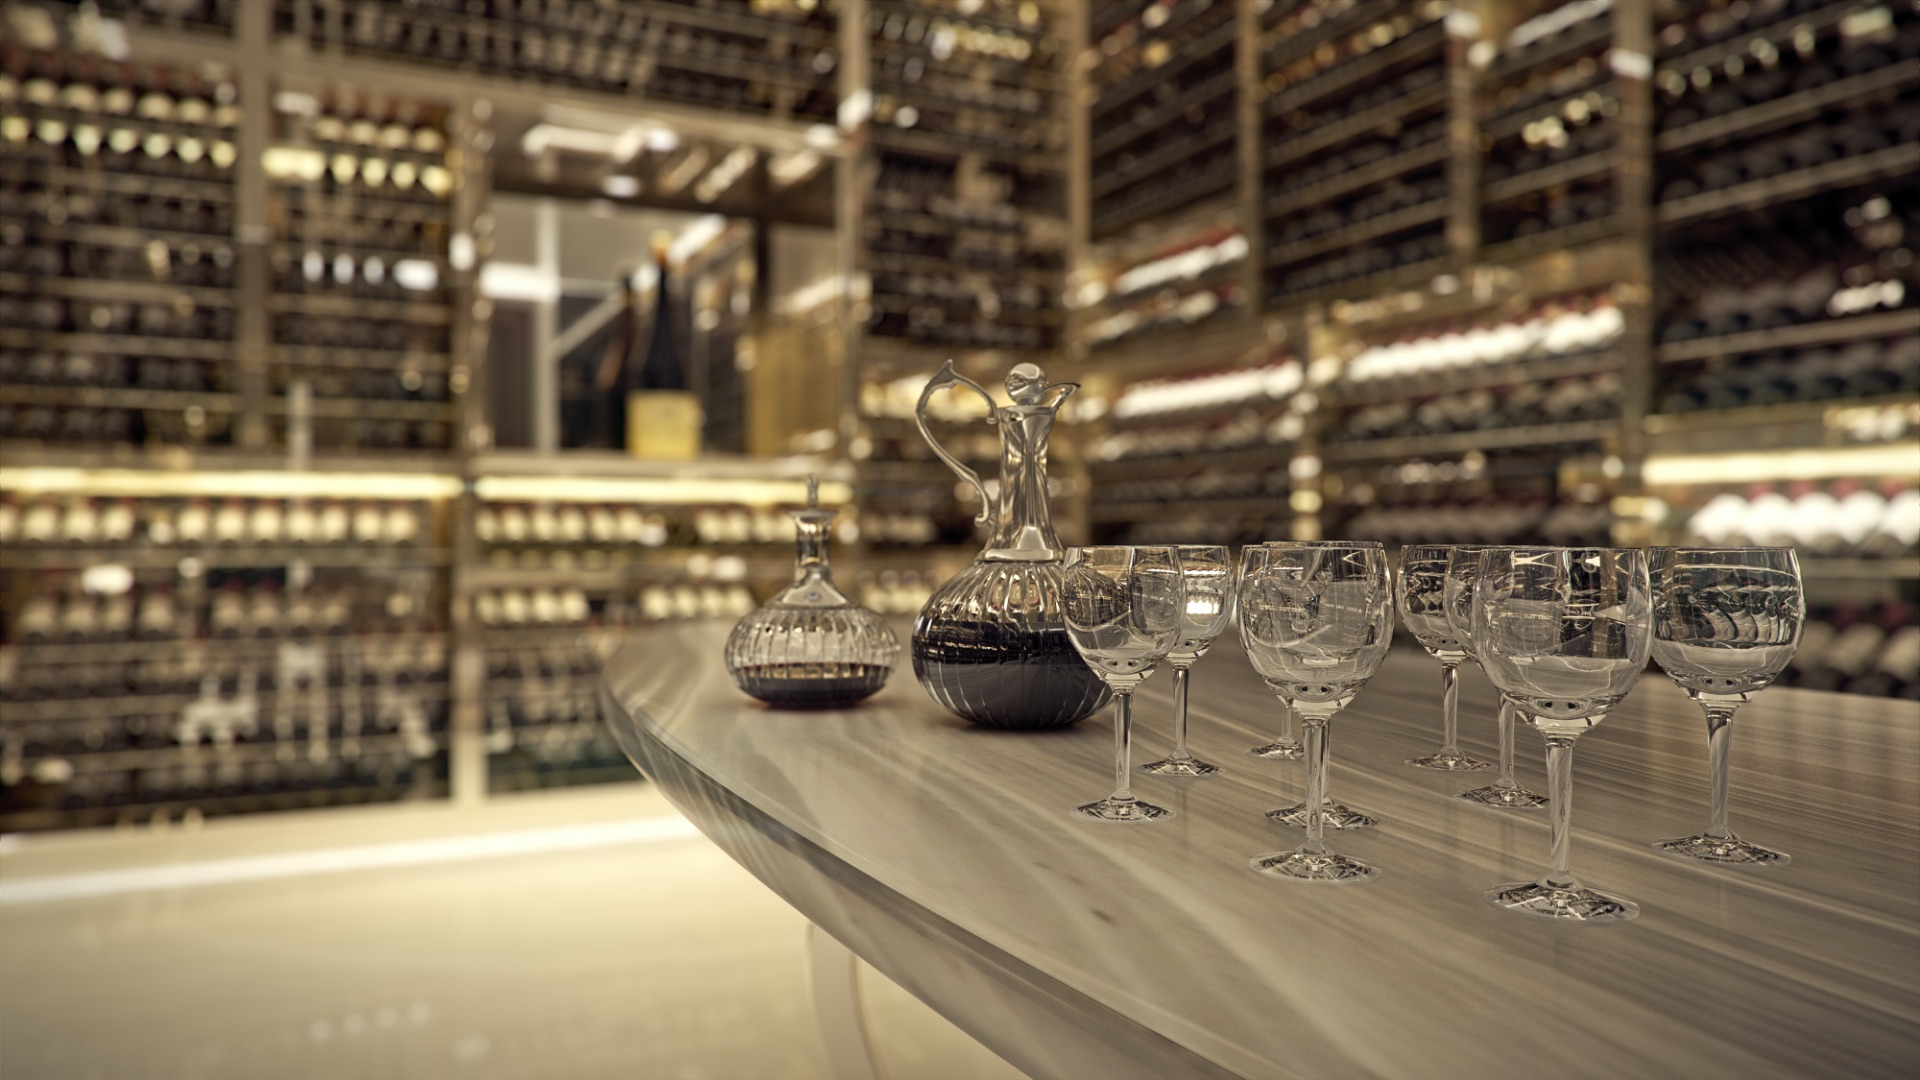 BRshit-interior-wine-room-closeup-c01_00000